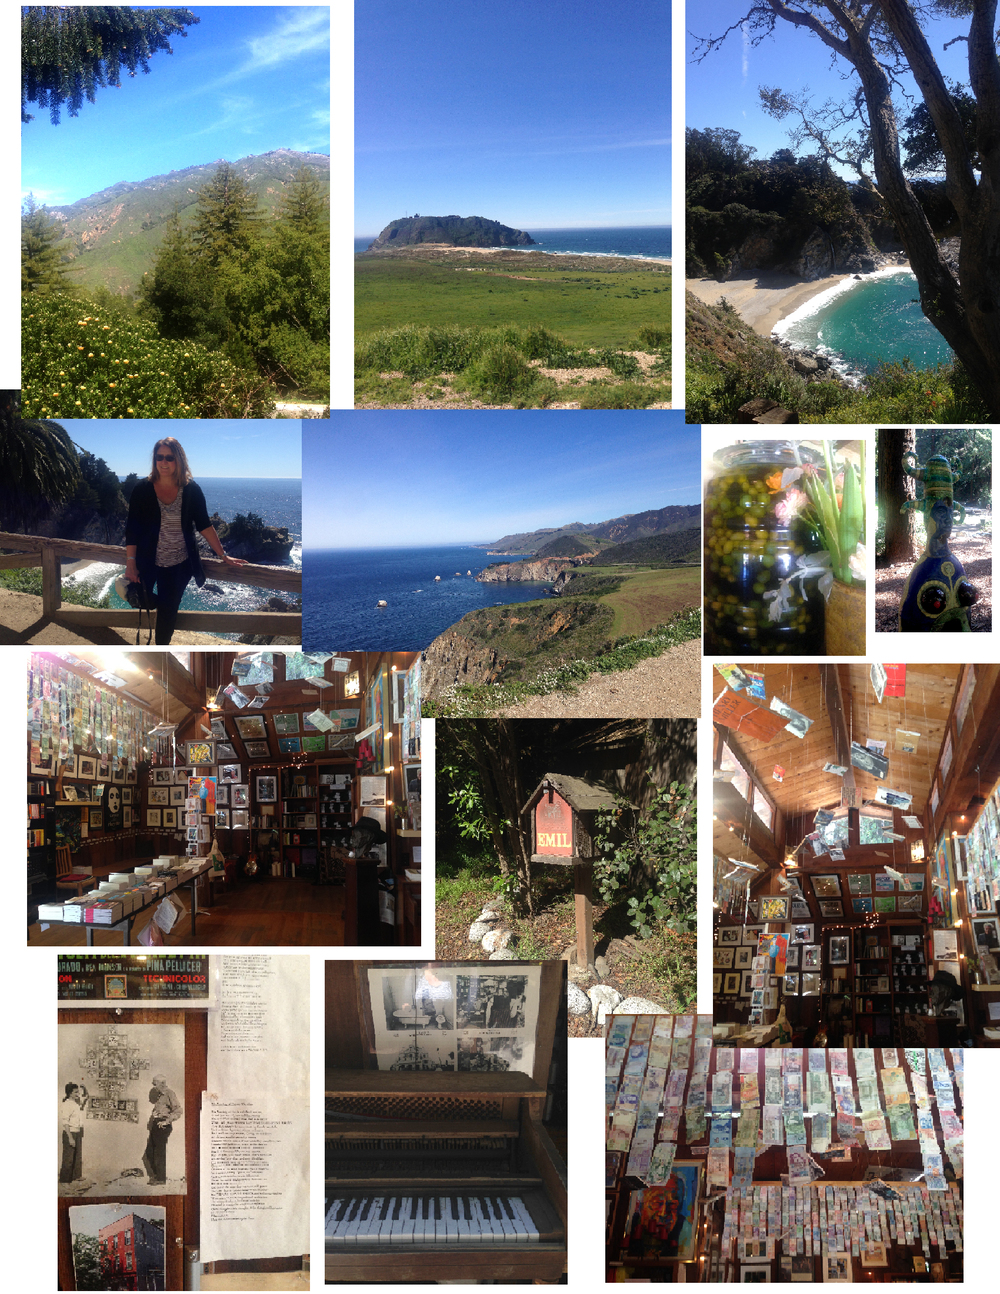 Big Sur Bakery, Henry Miller Memorial Library, McWay Falls - Big Sur